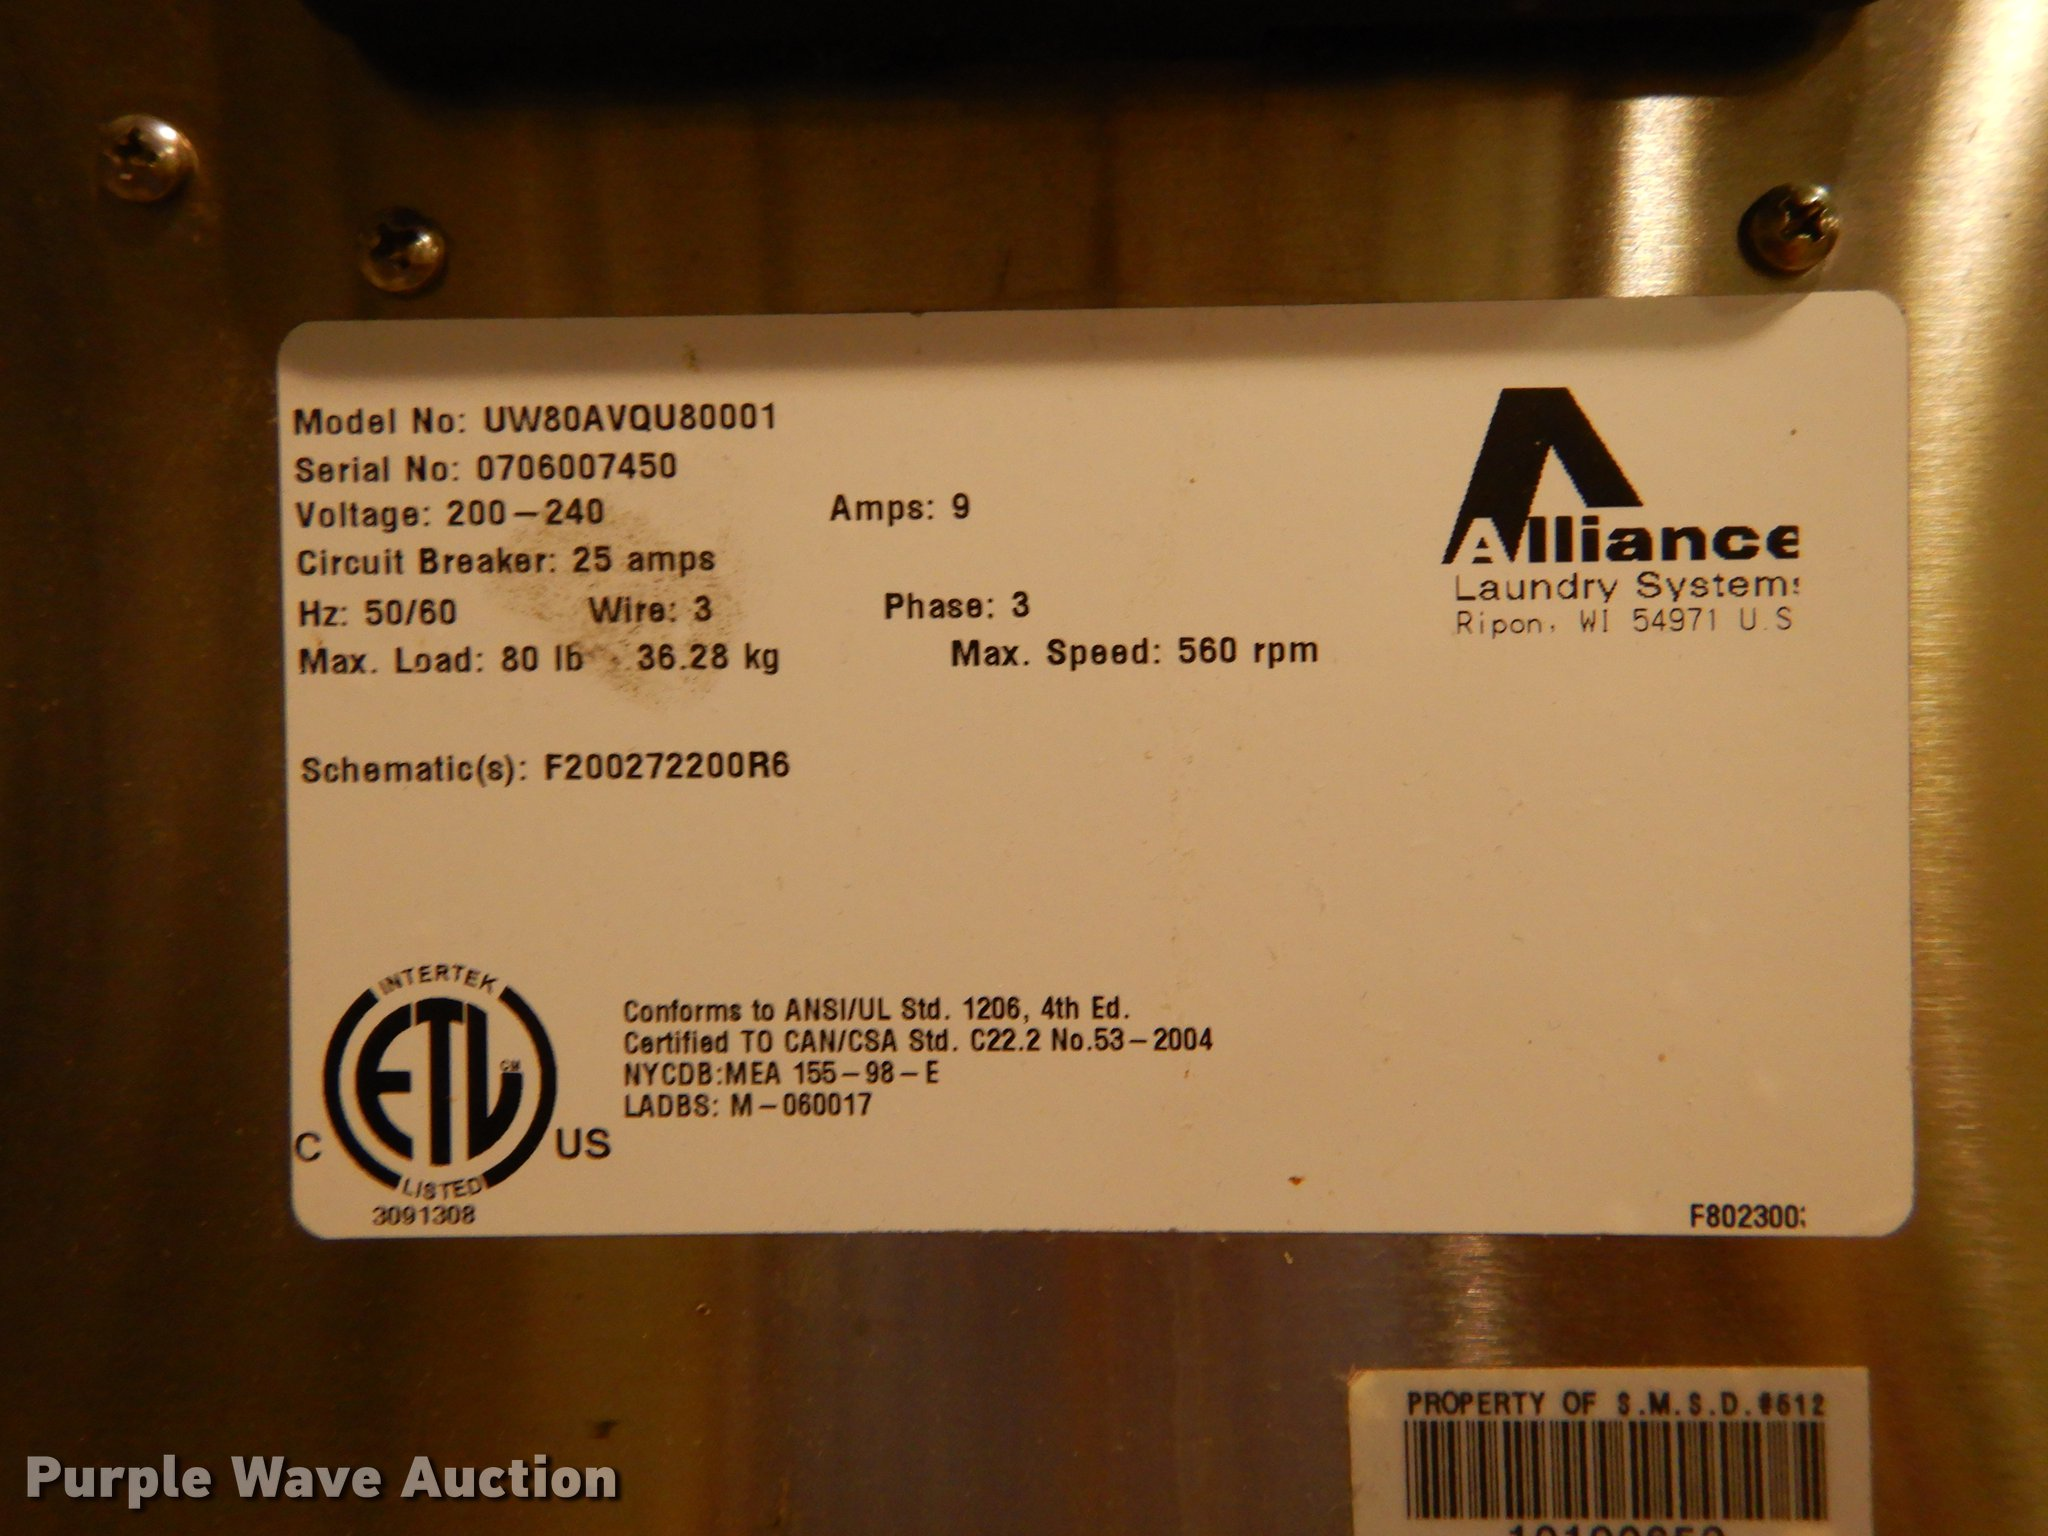 3 Washers Item Es9781 Sold July 10 Government Auction 2004 Load Max Trailer Wiring Schematic Full Size In New Window